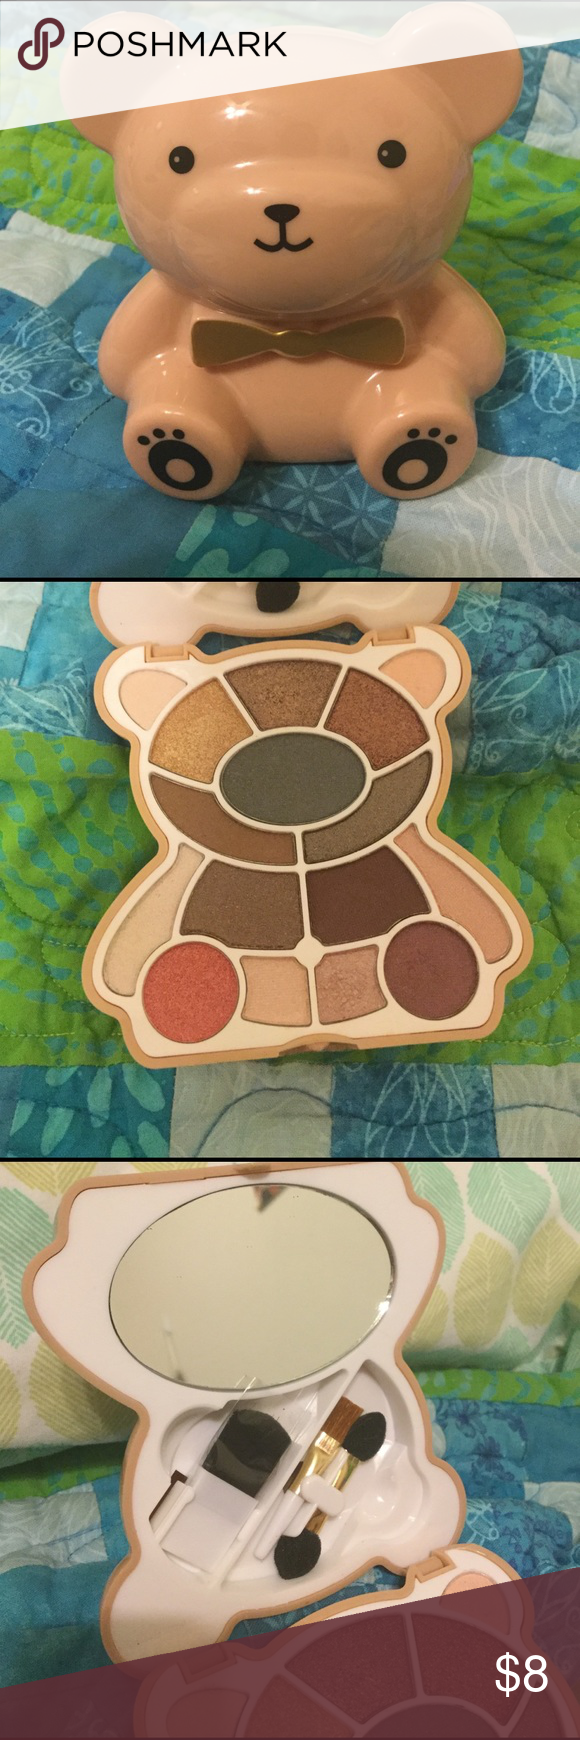 Teddy Bear Eyeshadow Palette Never used! Neutral tones with slight shimmer Forever 21 Makeup Eyeshadow